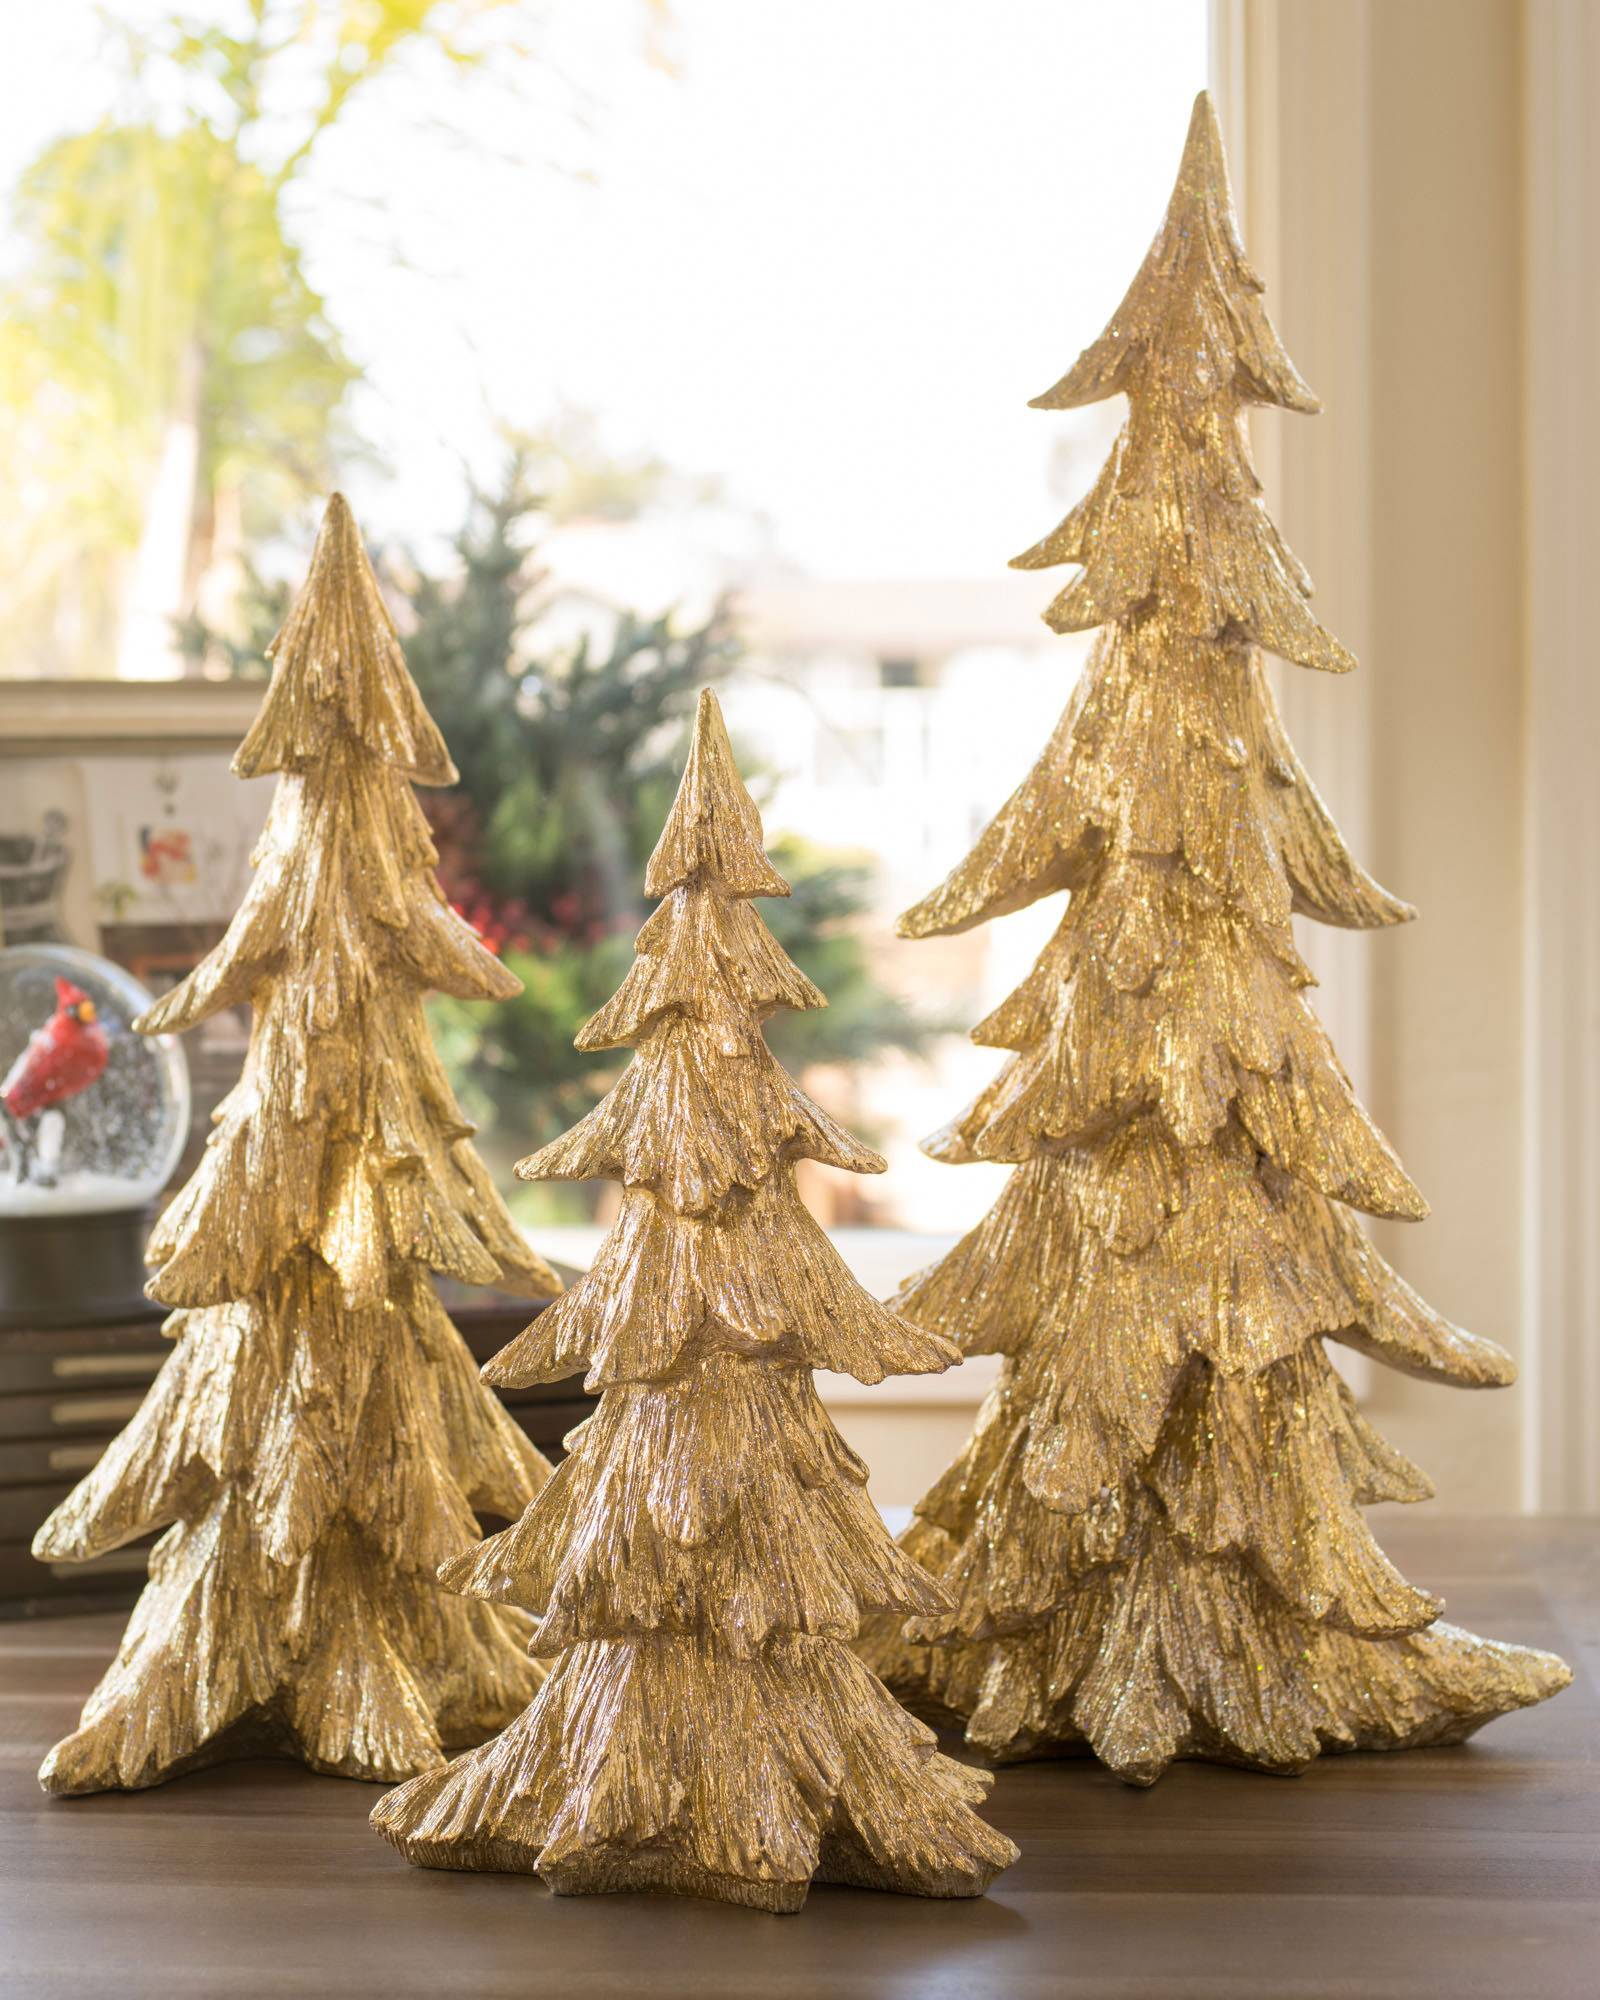 Tabletop ornament tree - Golden Christmas Tabletop Trees Set Of 3 Main